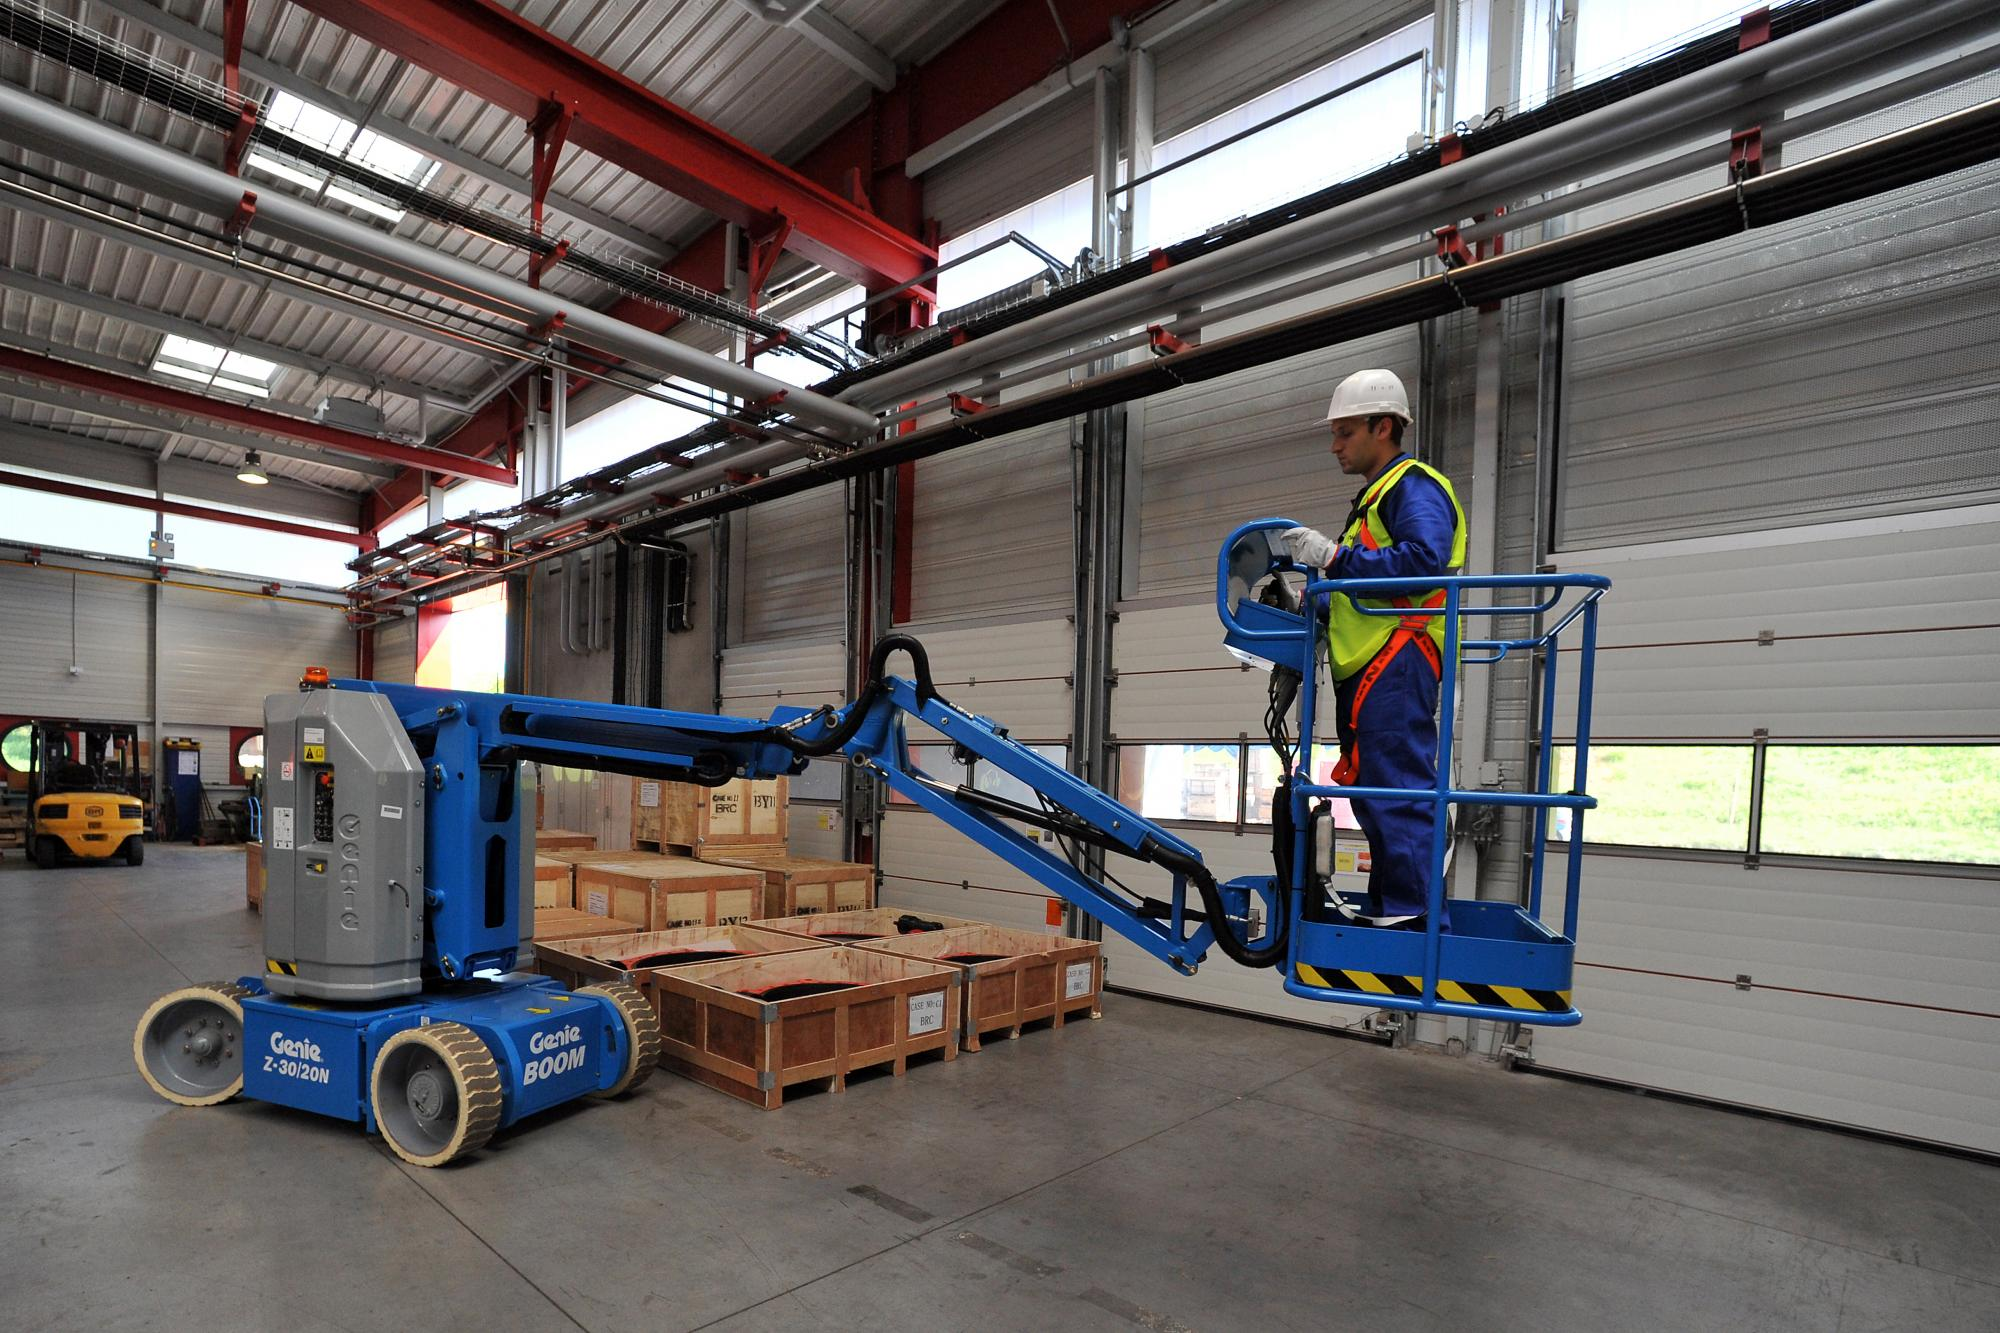 Genie® Z30/20NRJ (Narrow Rotating JIB) Articulated Boom Lift